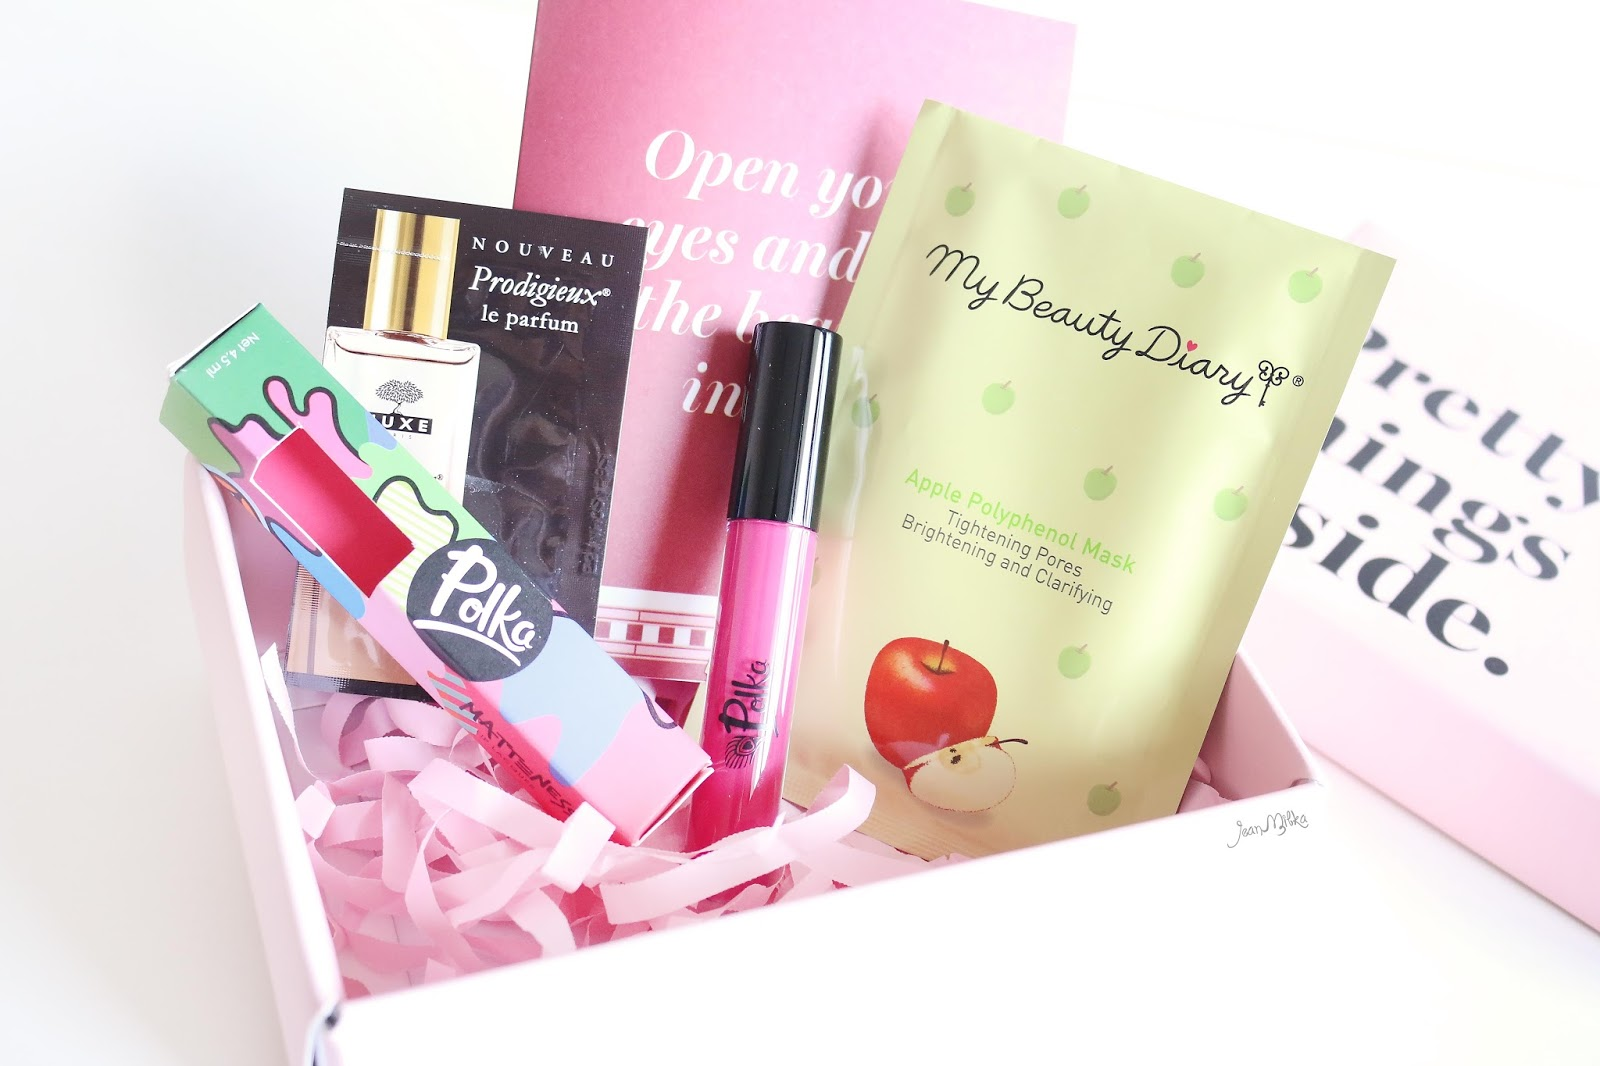 sociolla, sociolla box, sociolla beauty box, unboxing, unboxing sociolla box, review, jeanmilka, sociolla box maret